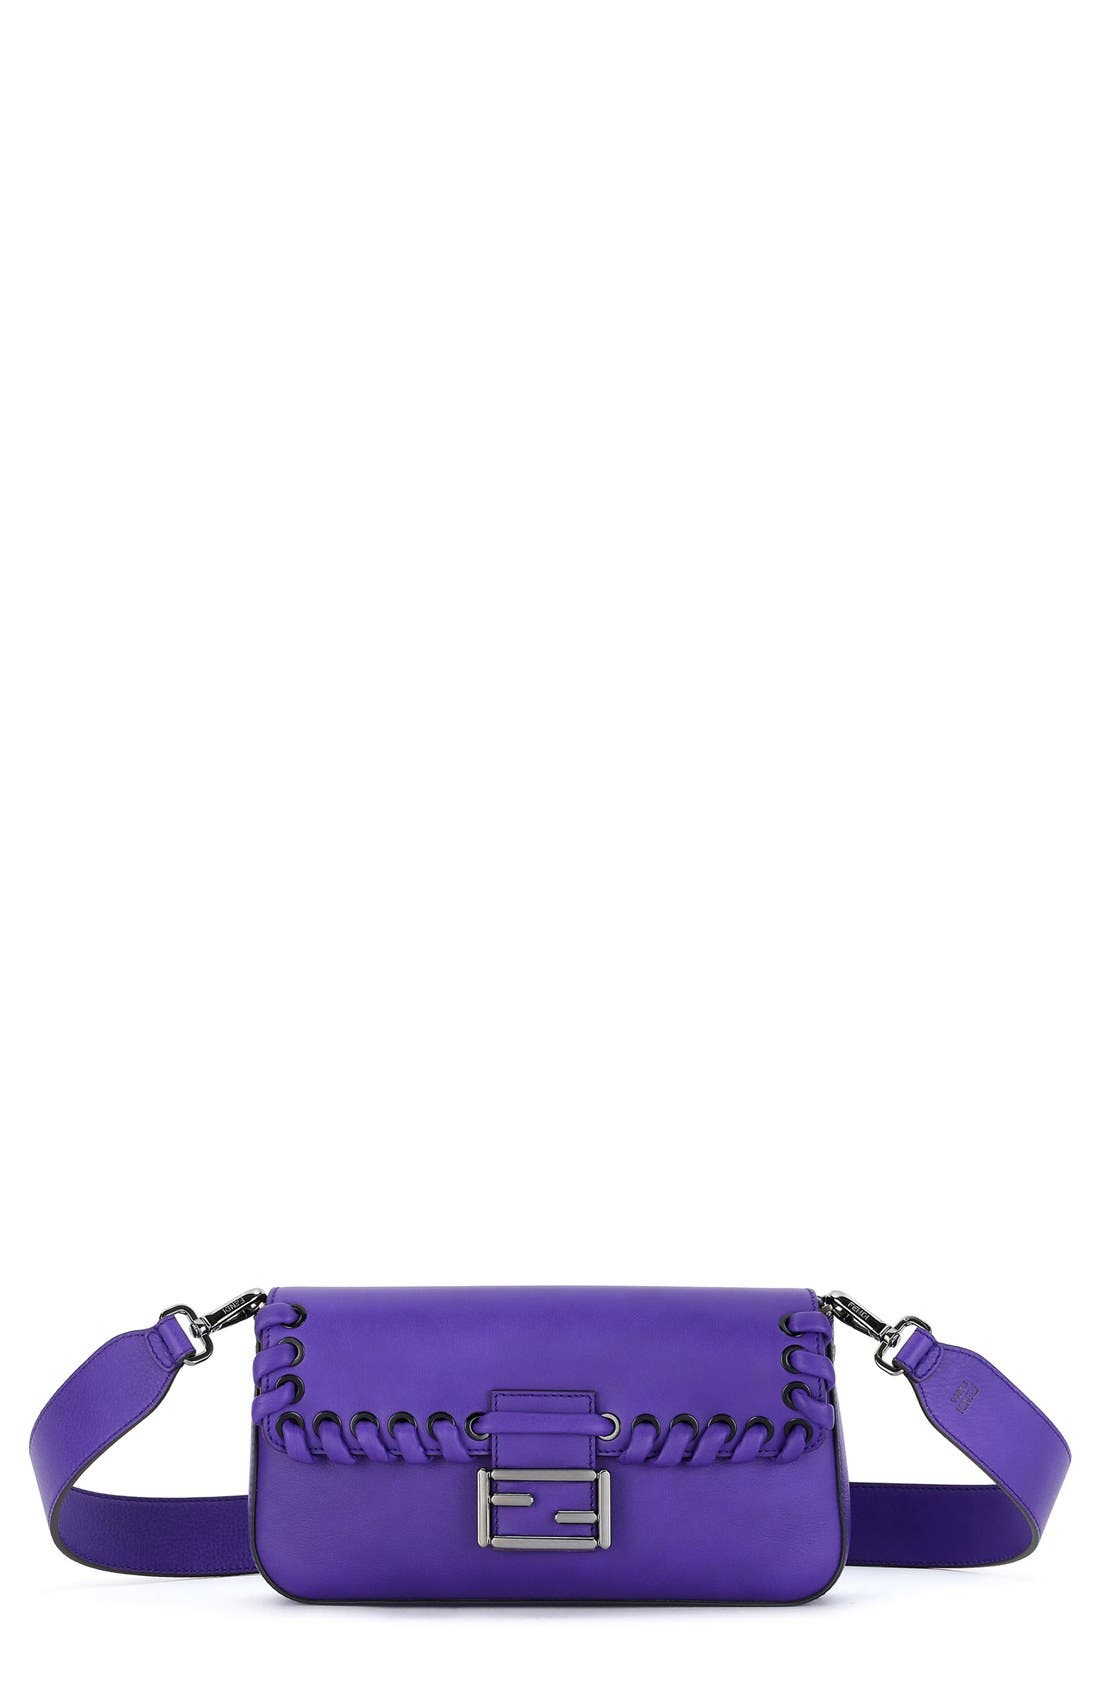 'Dolce' Calfskin Leather Baguette,                         Main,                         color, Purple Rain/ Ruthenium